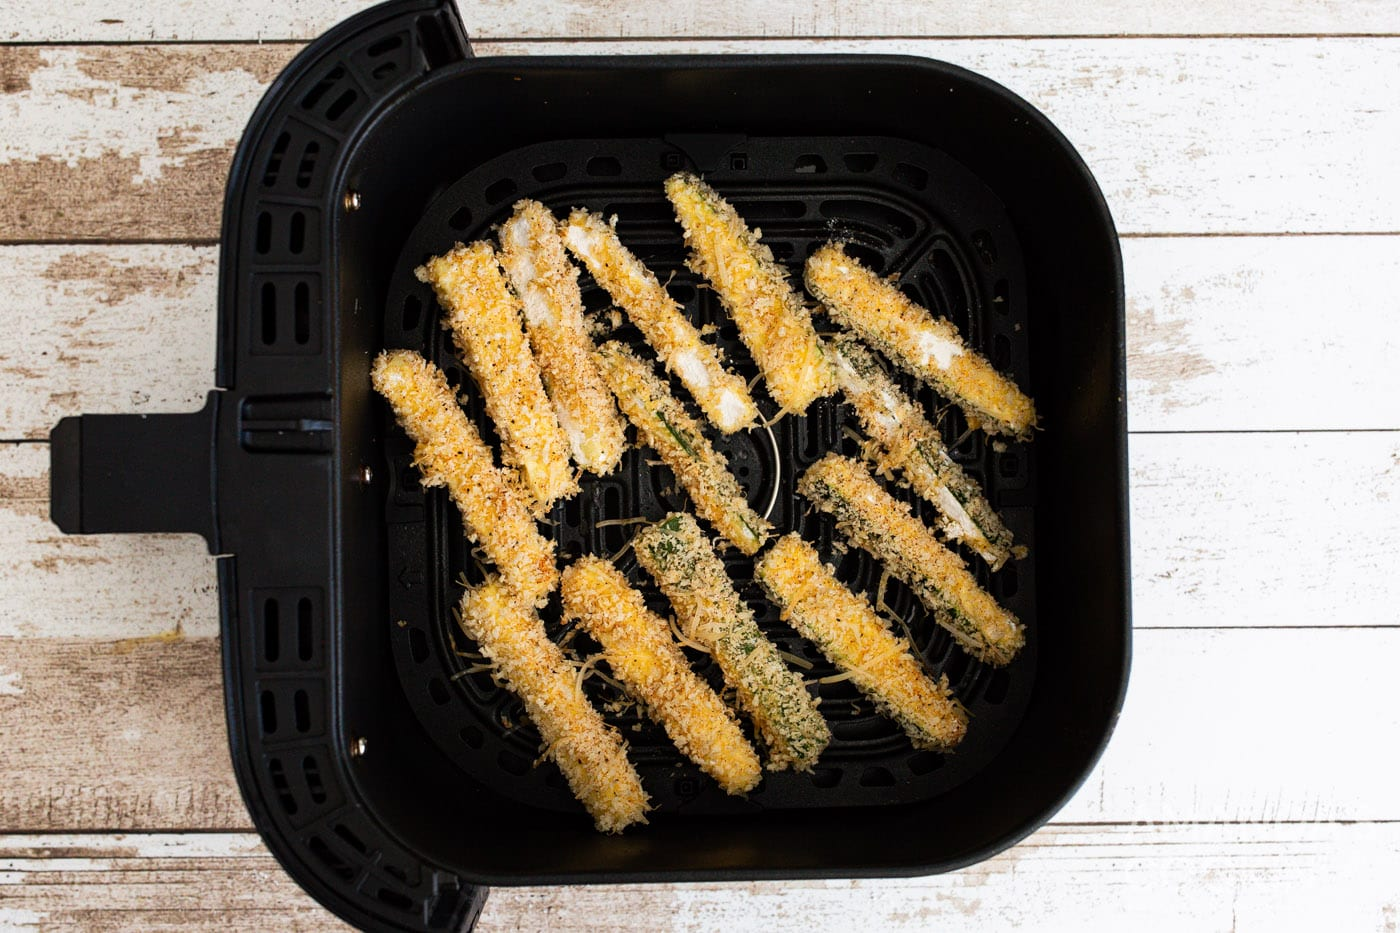 zucchini fries in air fryer basket